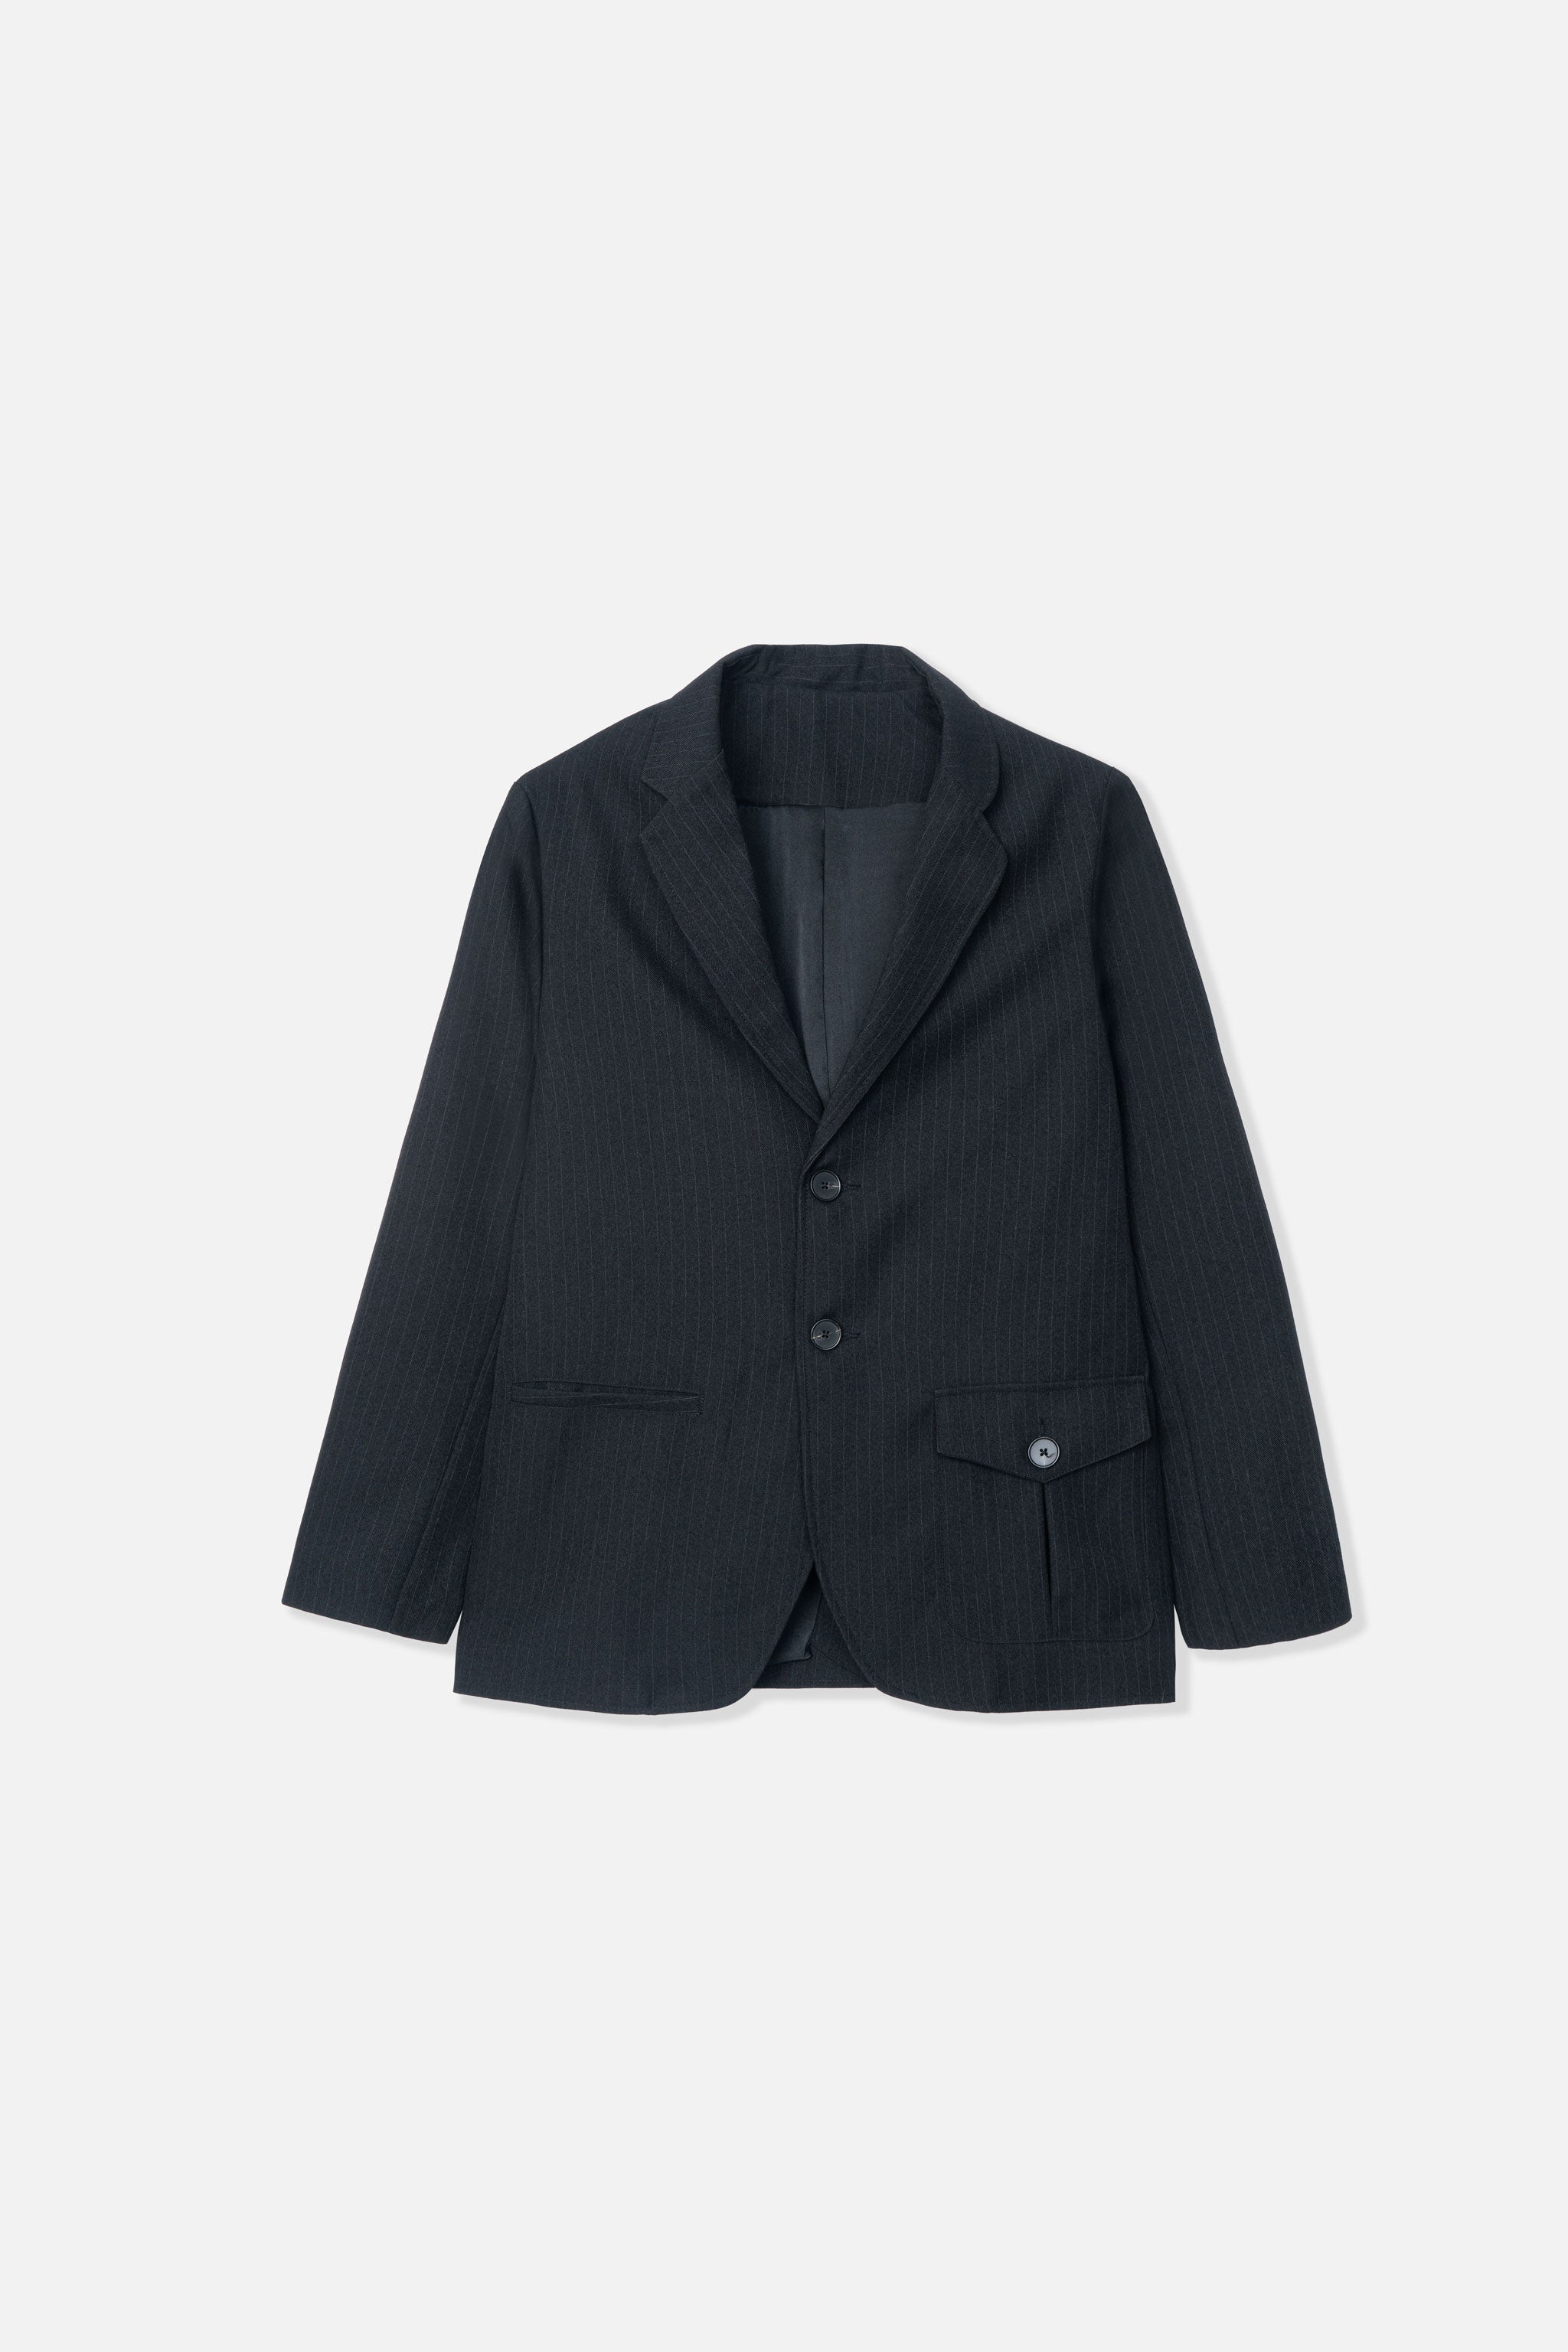 Goodfight Gemini Blazer Black Pinstripe